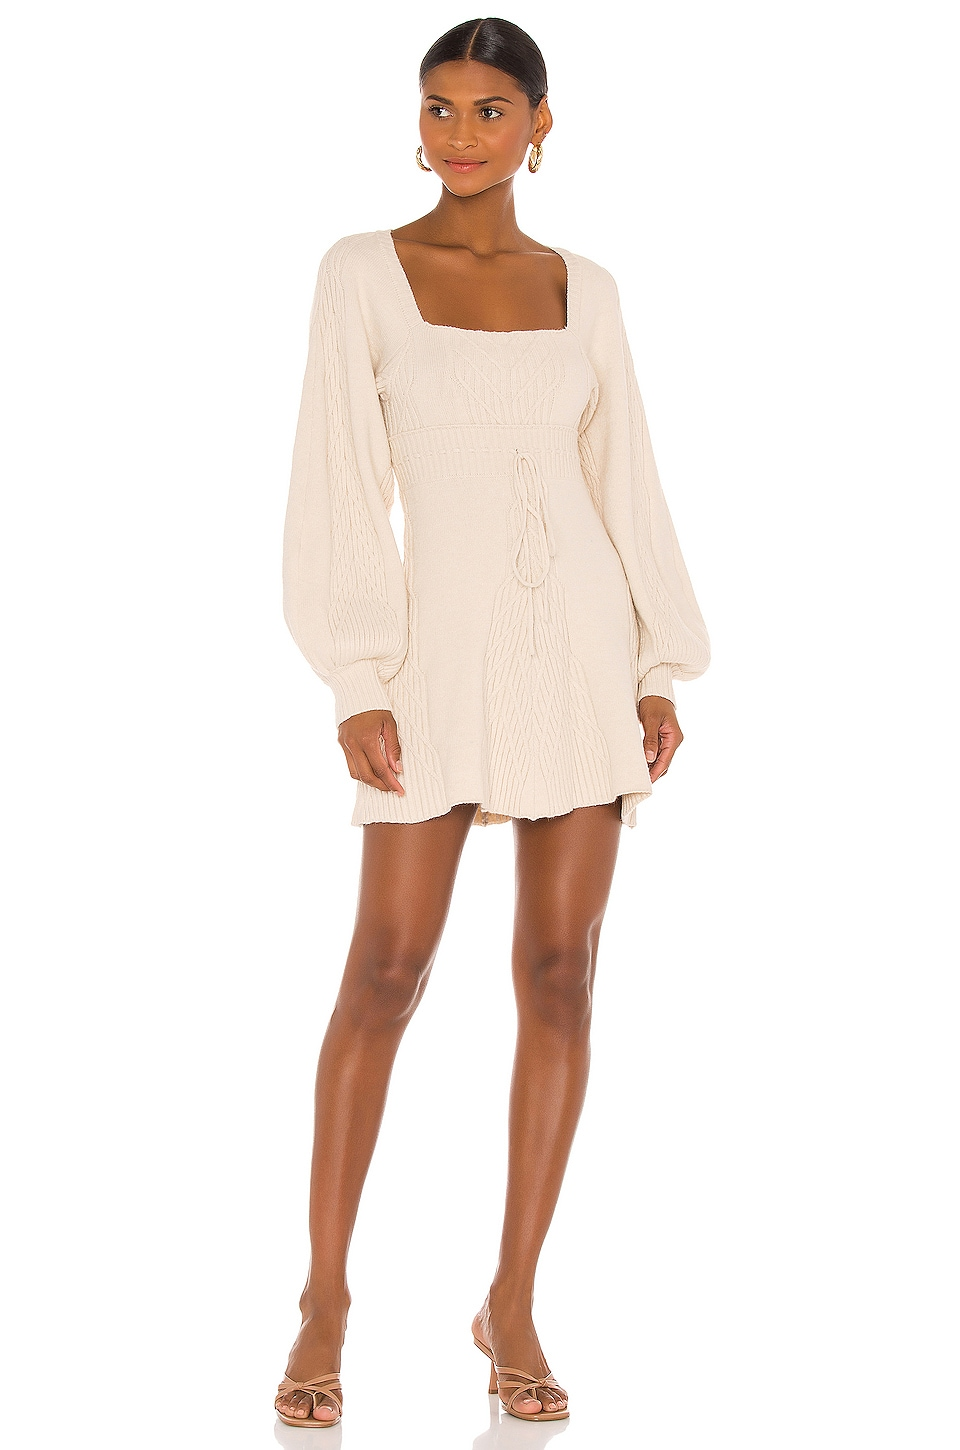 Free People Emmaline Mini Dress In Evening Cream Revolve Check out the latest mini dresses at revolve which we offer in a variety of colors. free people